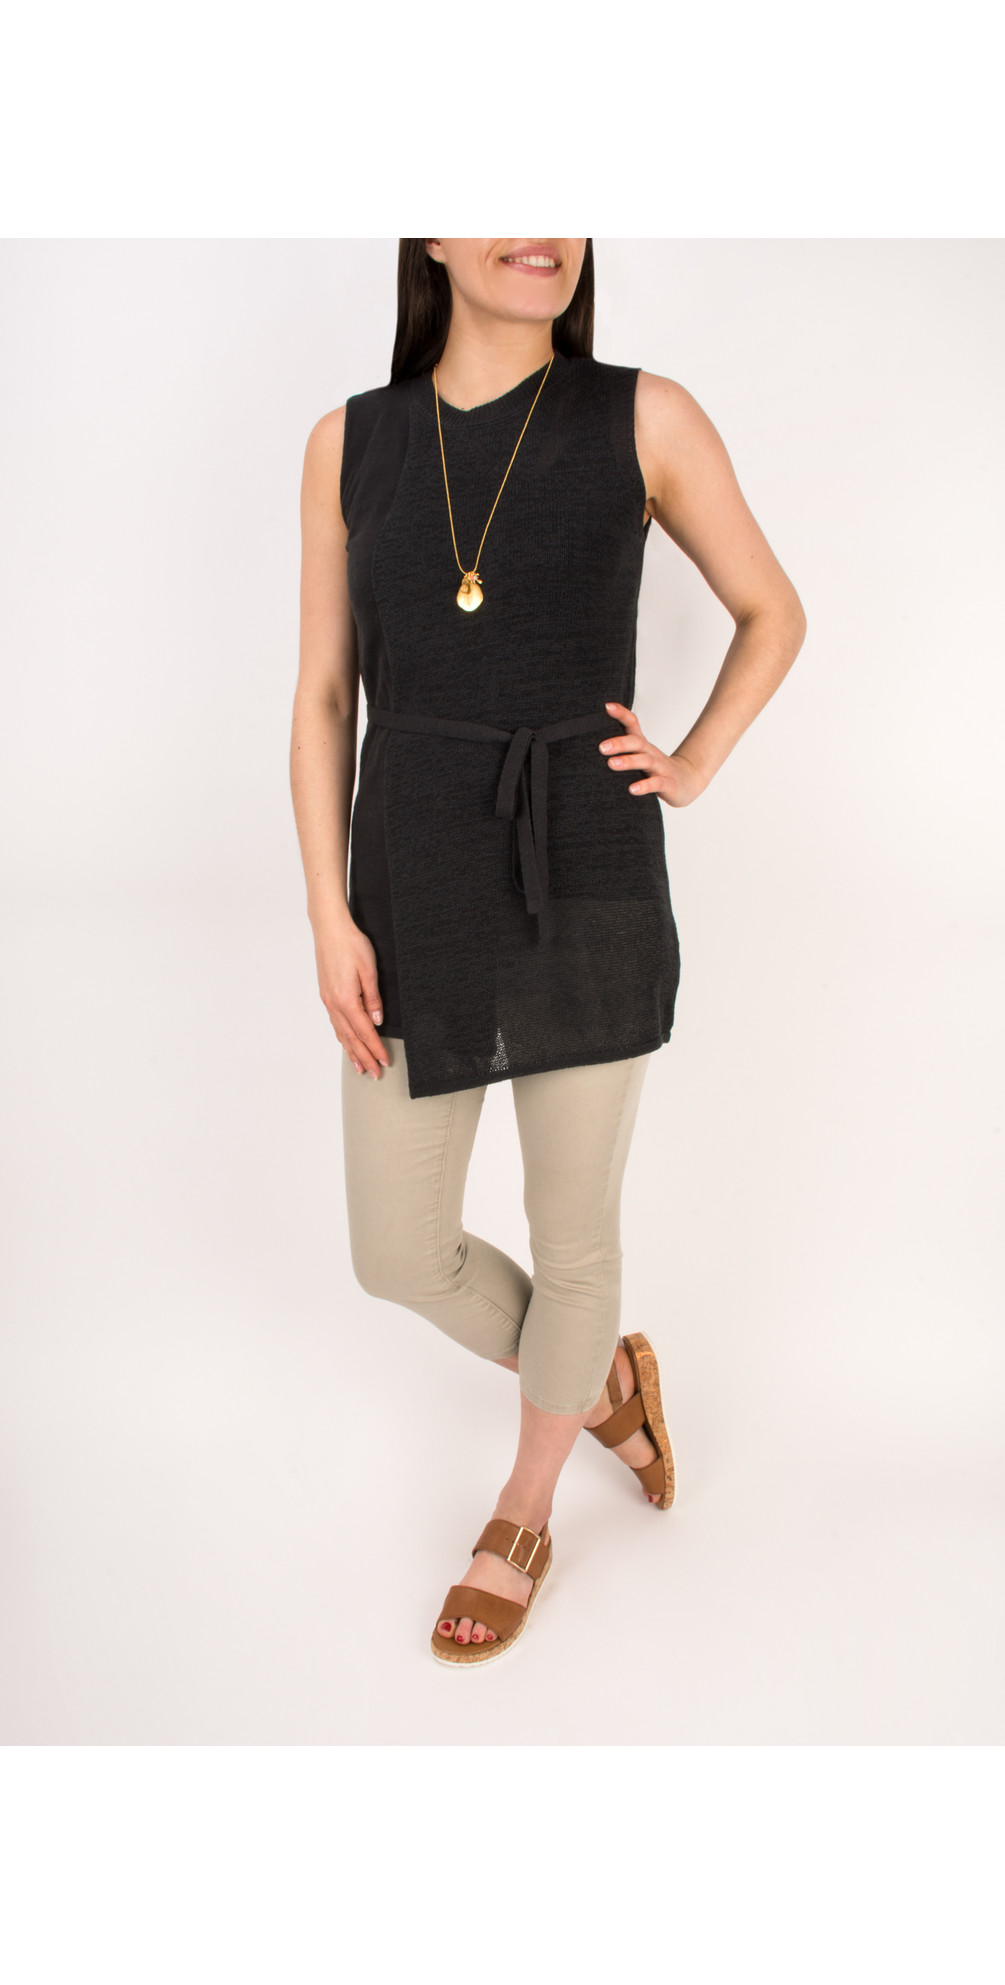 Woven Sleeveless Top With Waist Tie main image